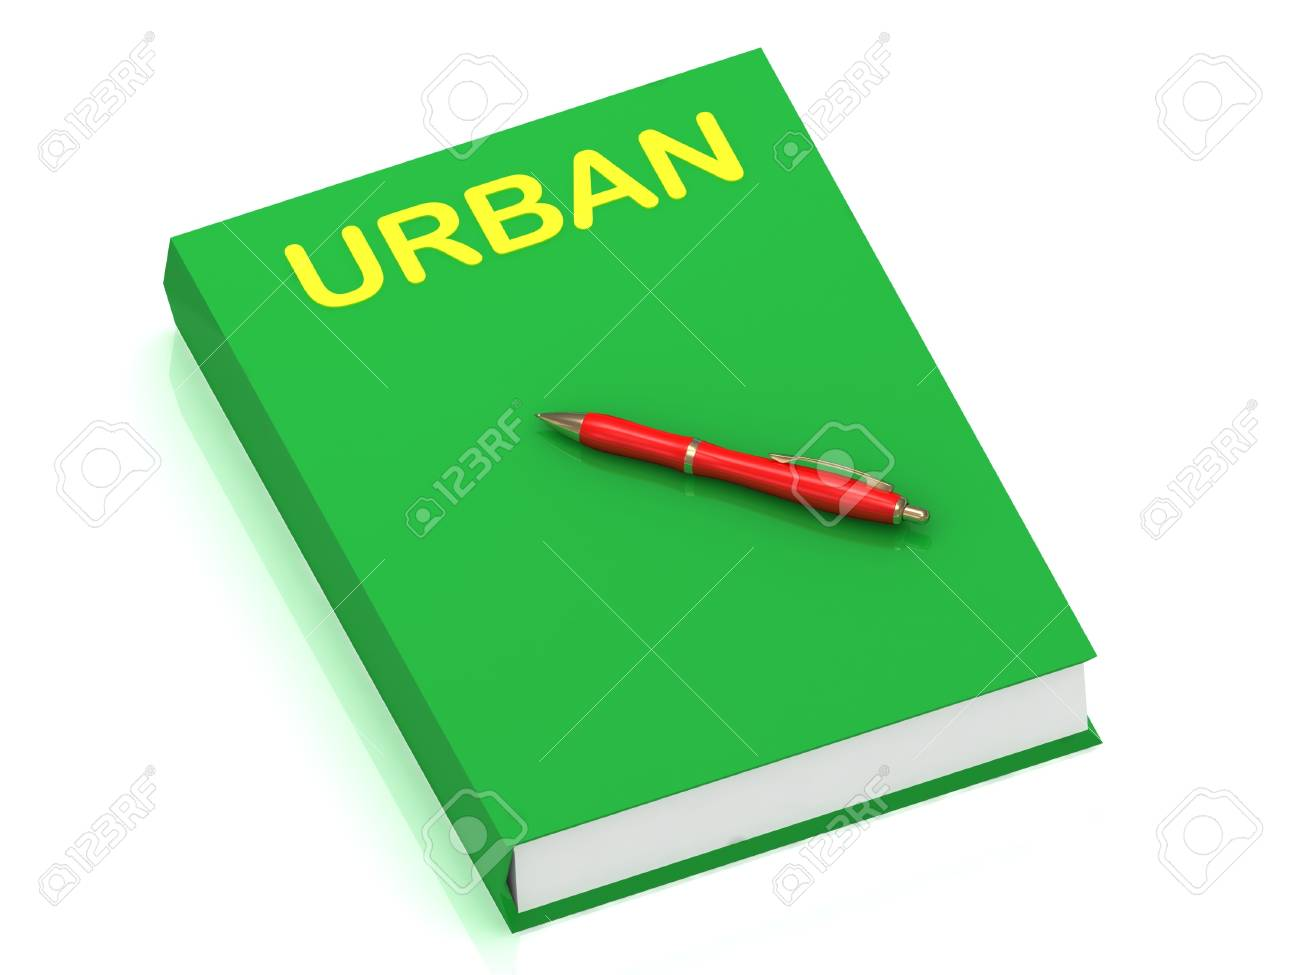 URBAN inscription on cover book and red pen on the book. 3D illustration isolated on white background Stock Photo - 14687611